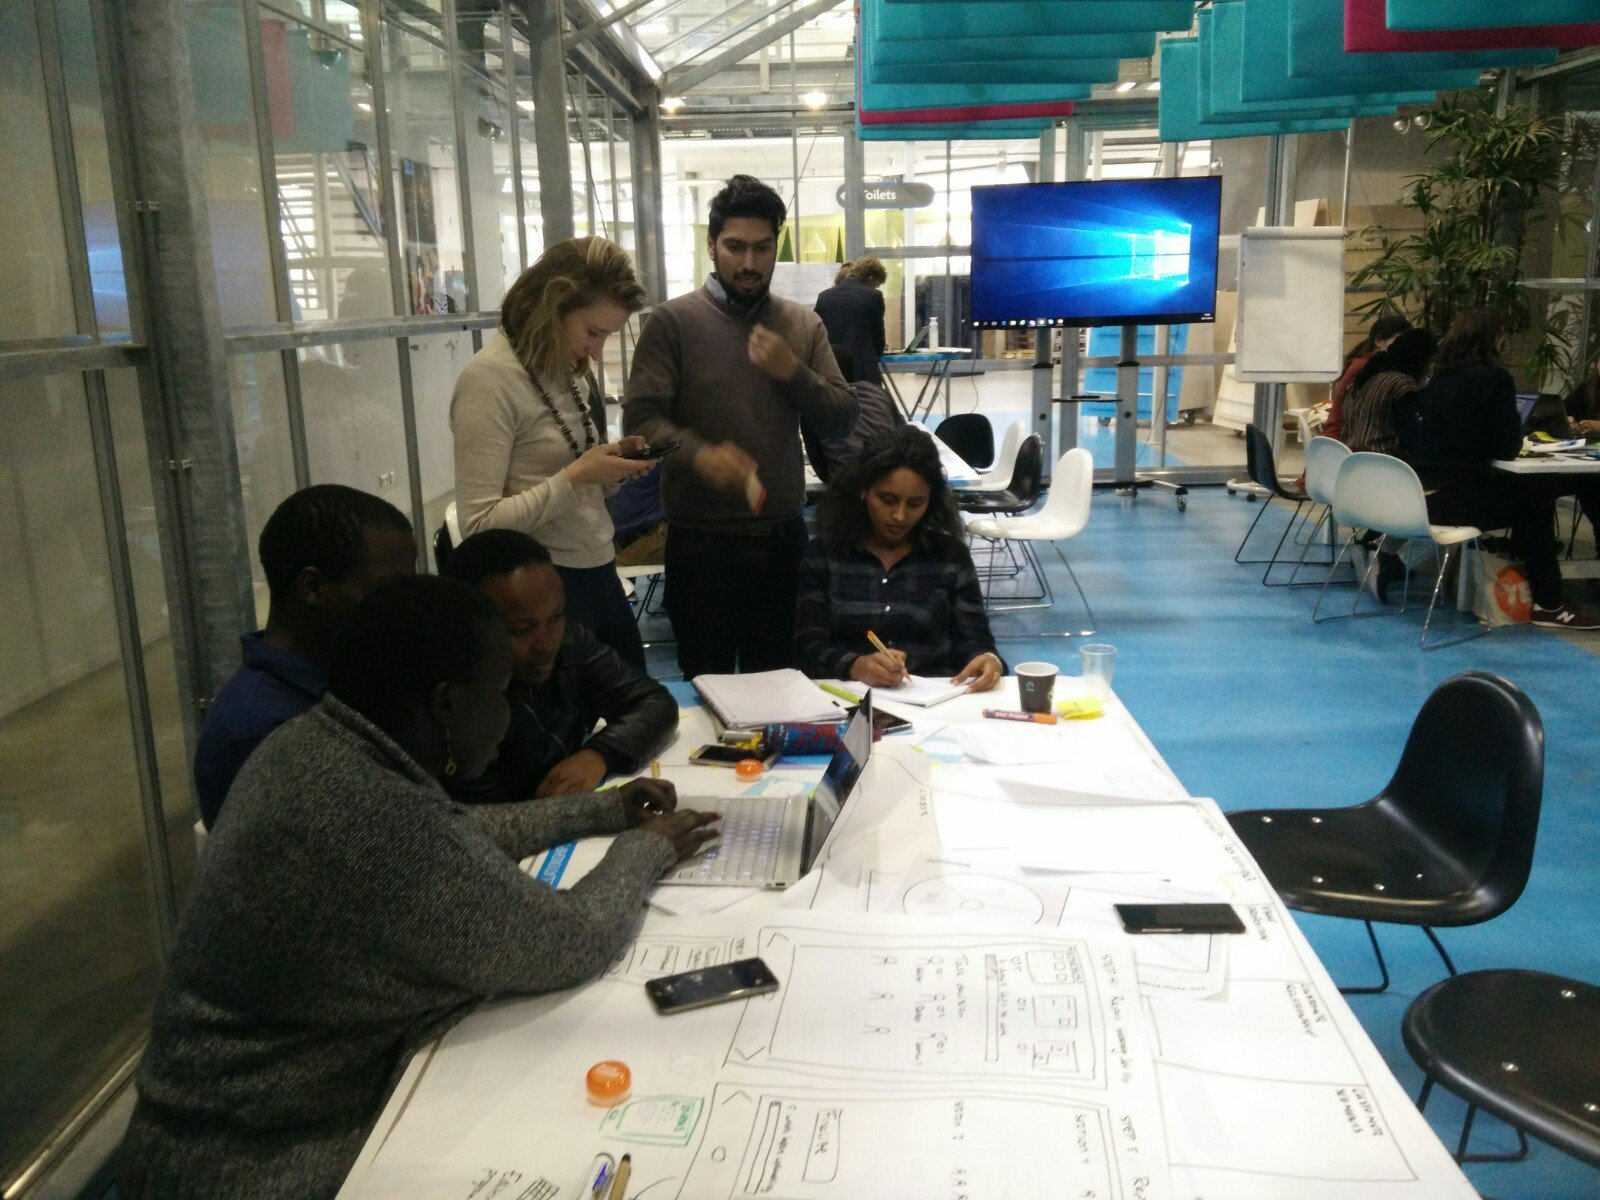 Young Experts from Batch 14 finalizing their 'prototypes sprint' to improve the YEP network for alumni, during their Design Thinking Training from @youngcolfield between the inspiring  innovative companies at incubator @YESDelft ! https://t.co/UDvimDY92q